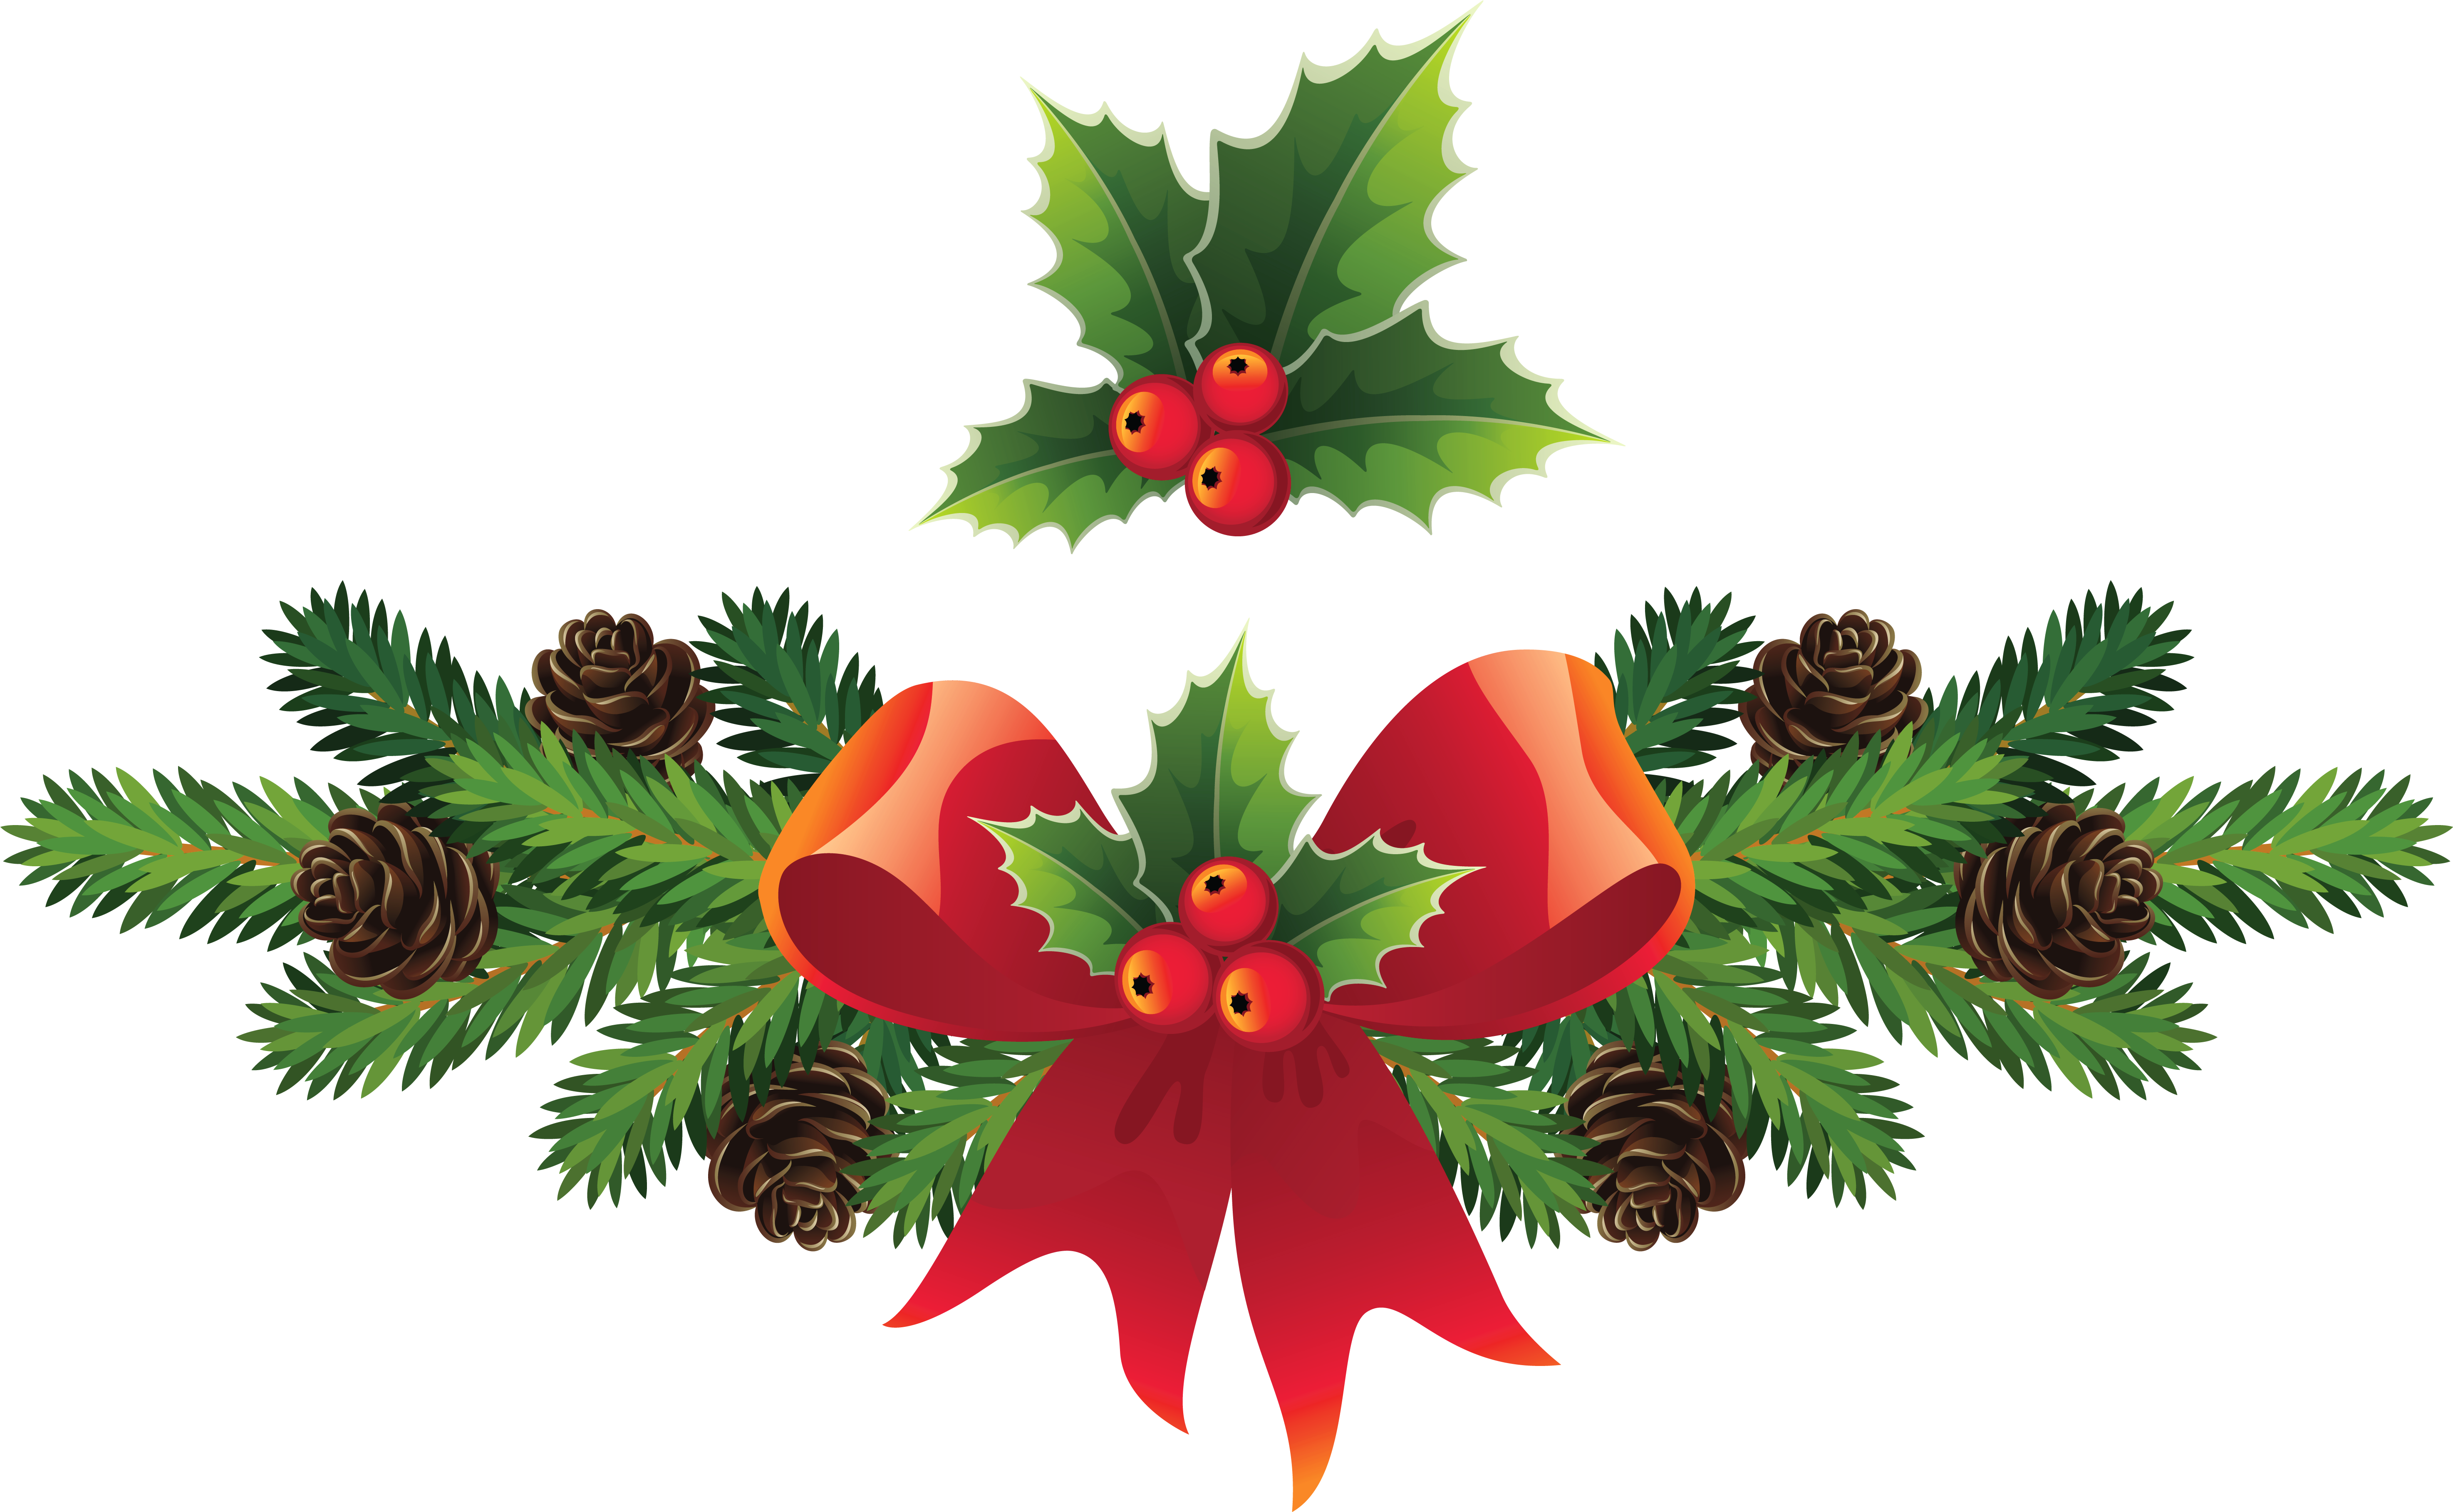 mistletoe png - Christmas Holly Mistletoe Png Clip Art Image Png M - Christmas Messages In ...